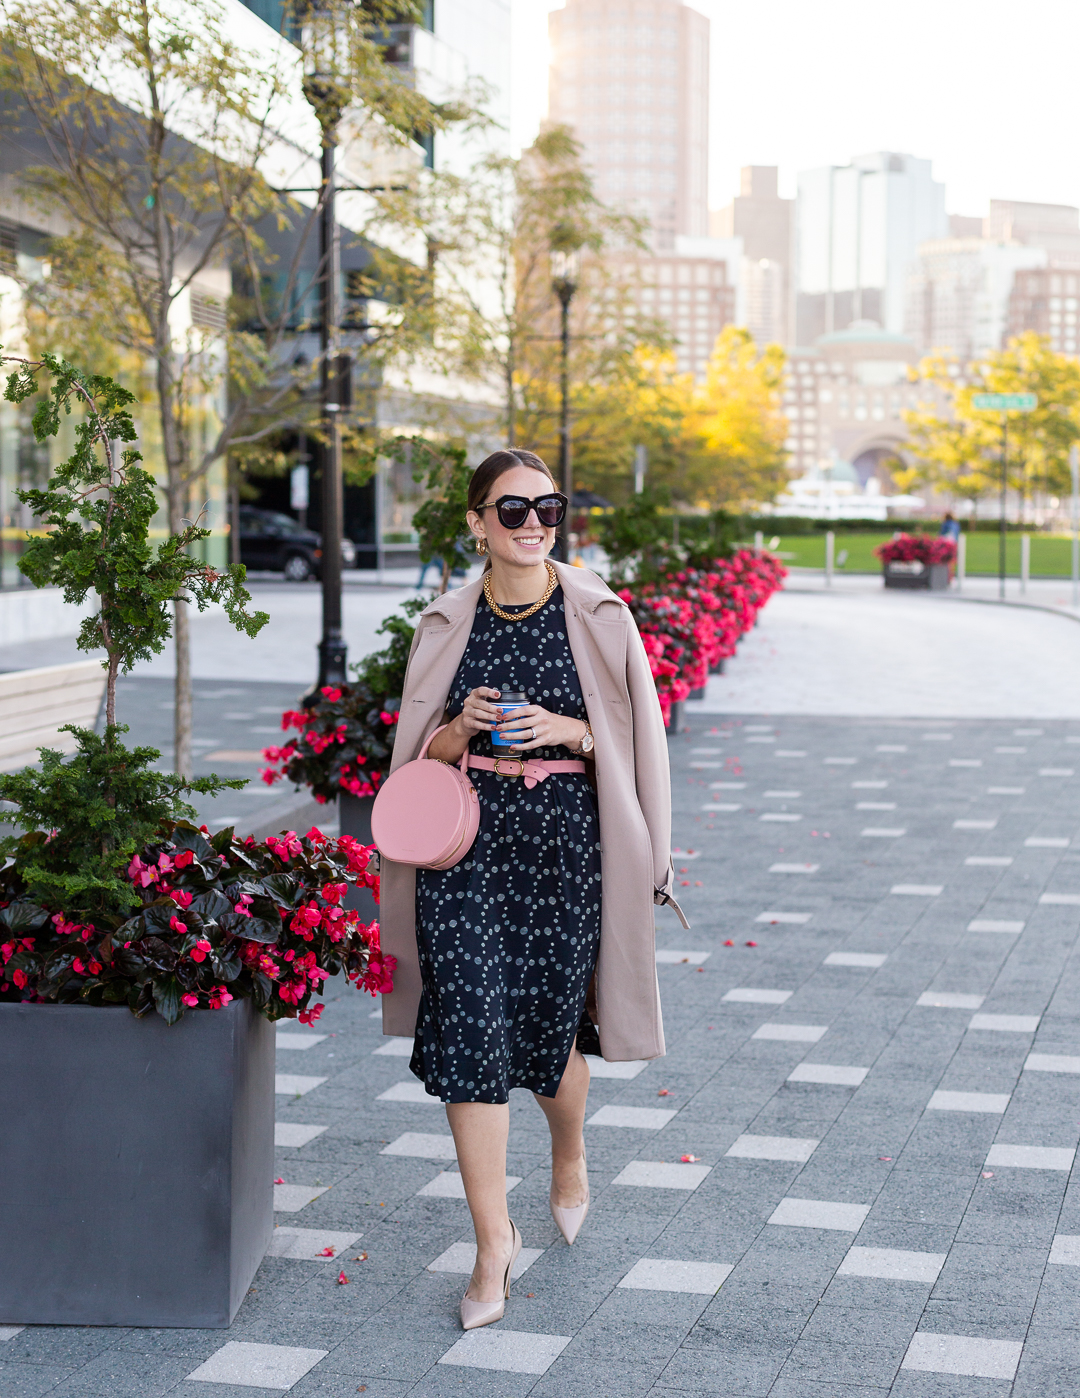 Sophisticated polka dots that are fit for the office